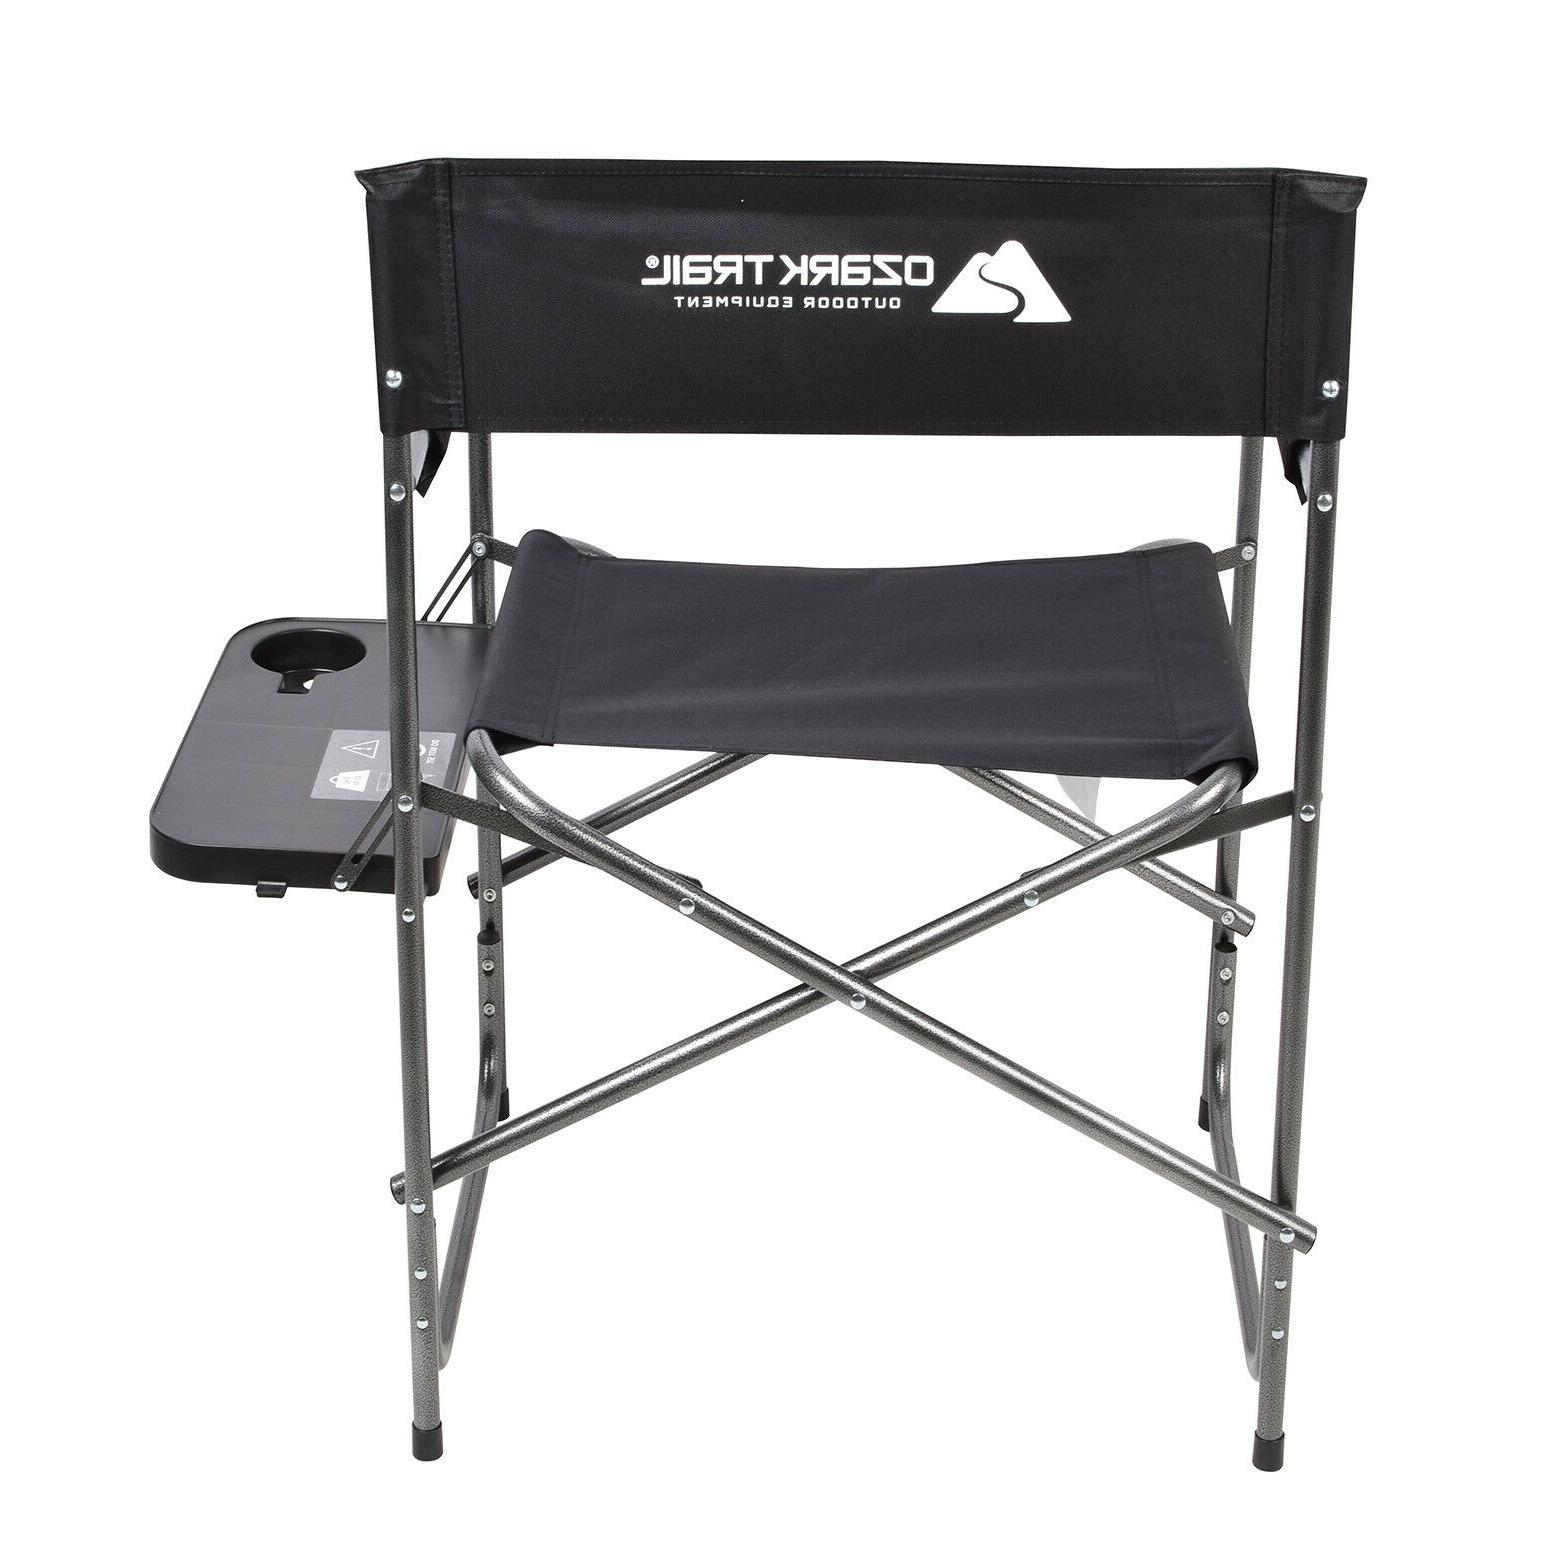 Foldable Chair Travel Camping Backyard Outdoor Lawn